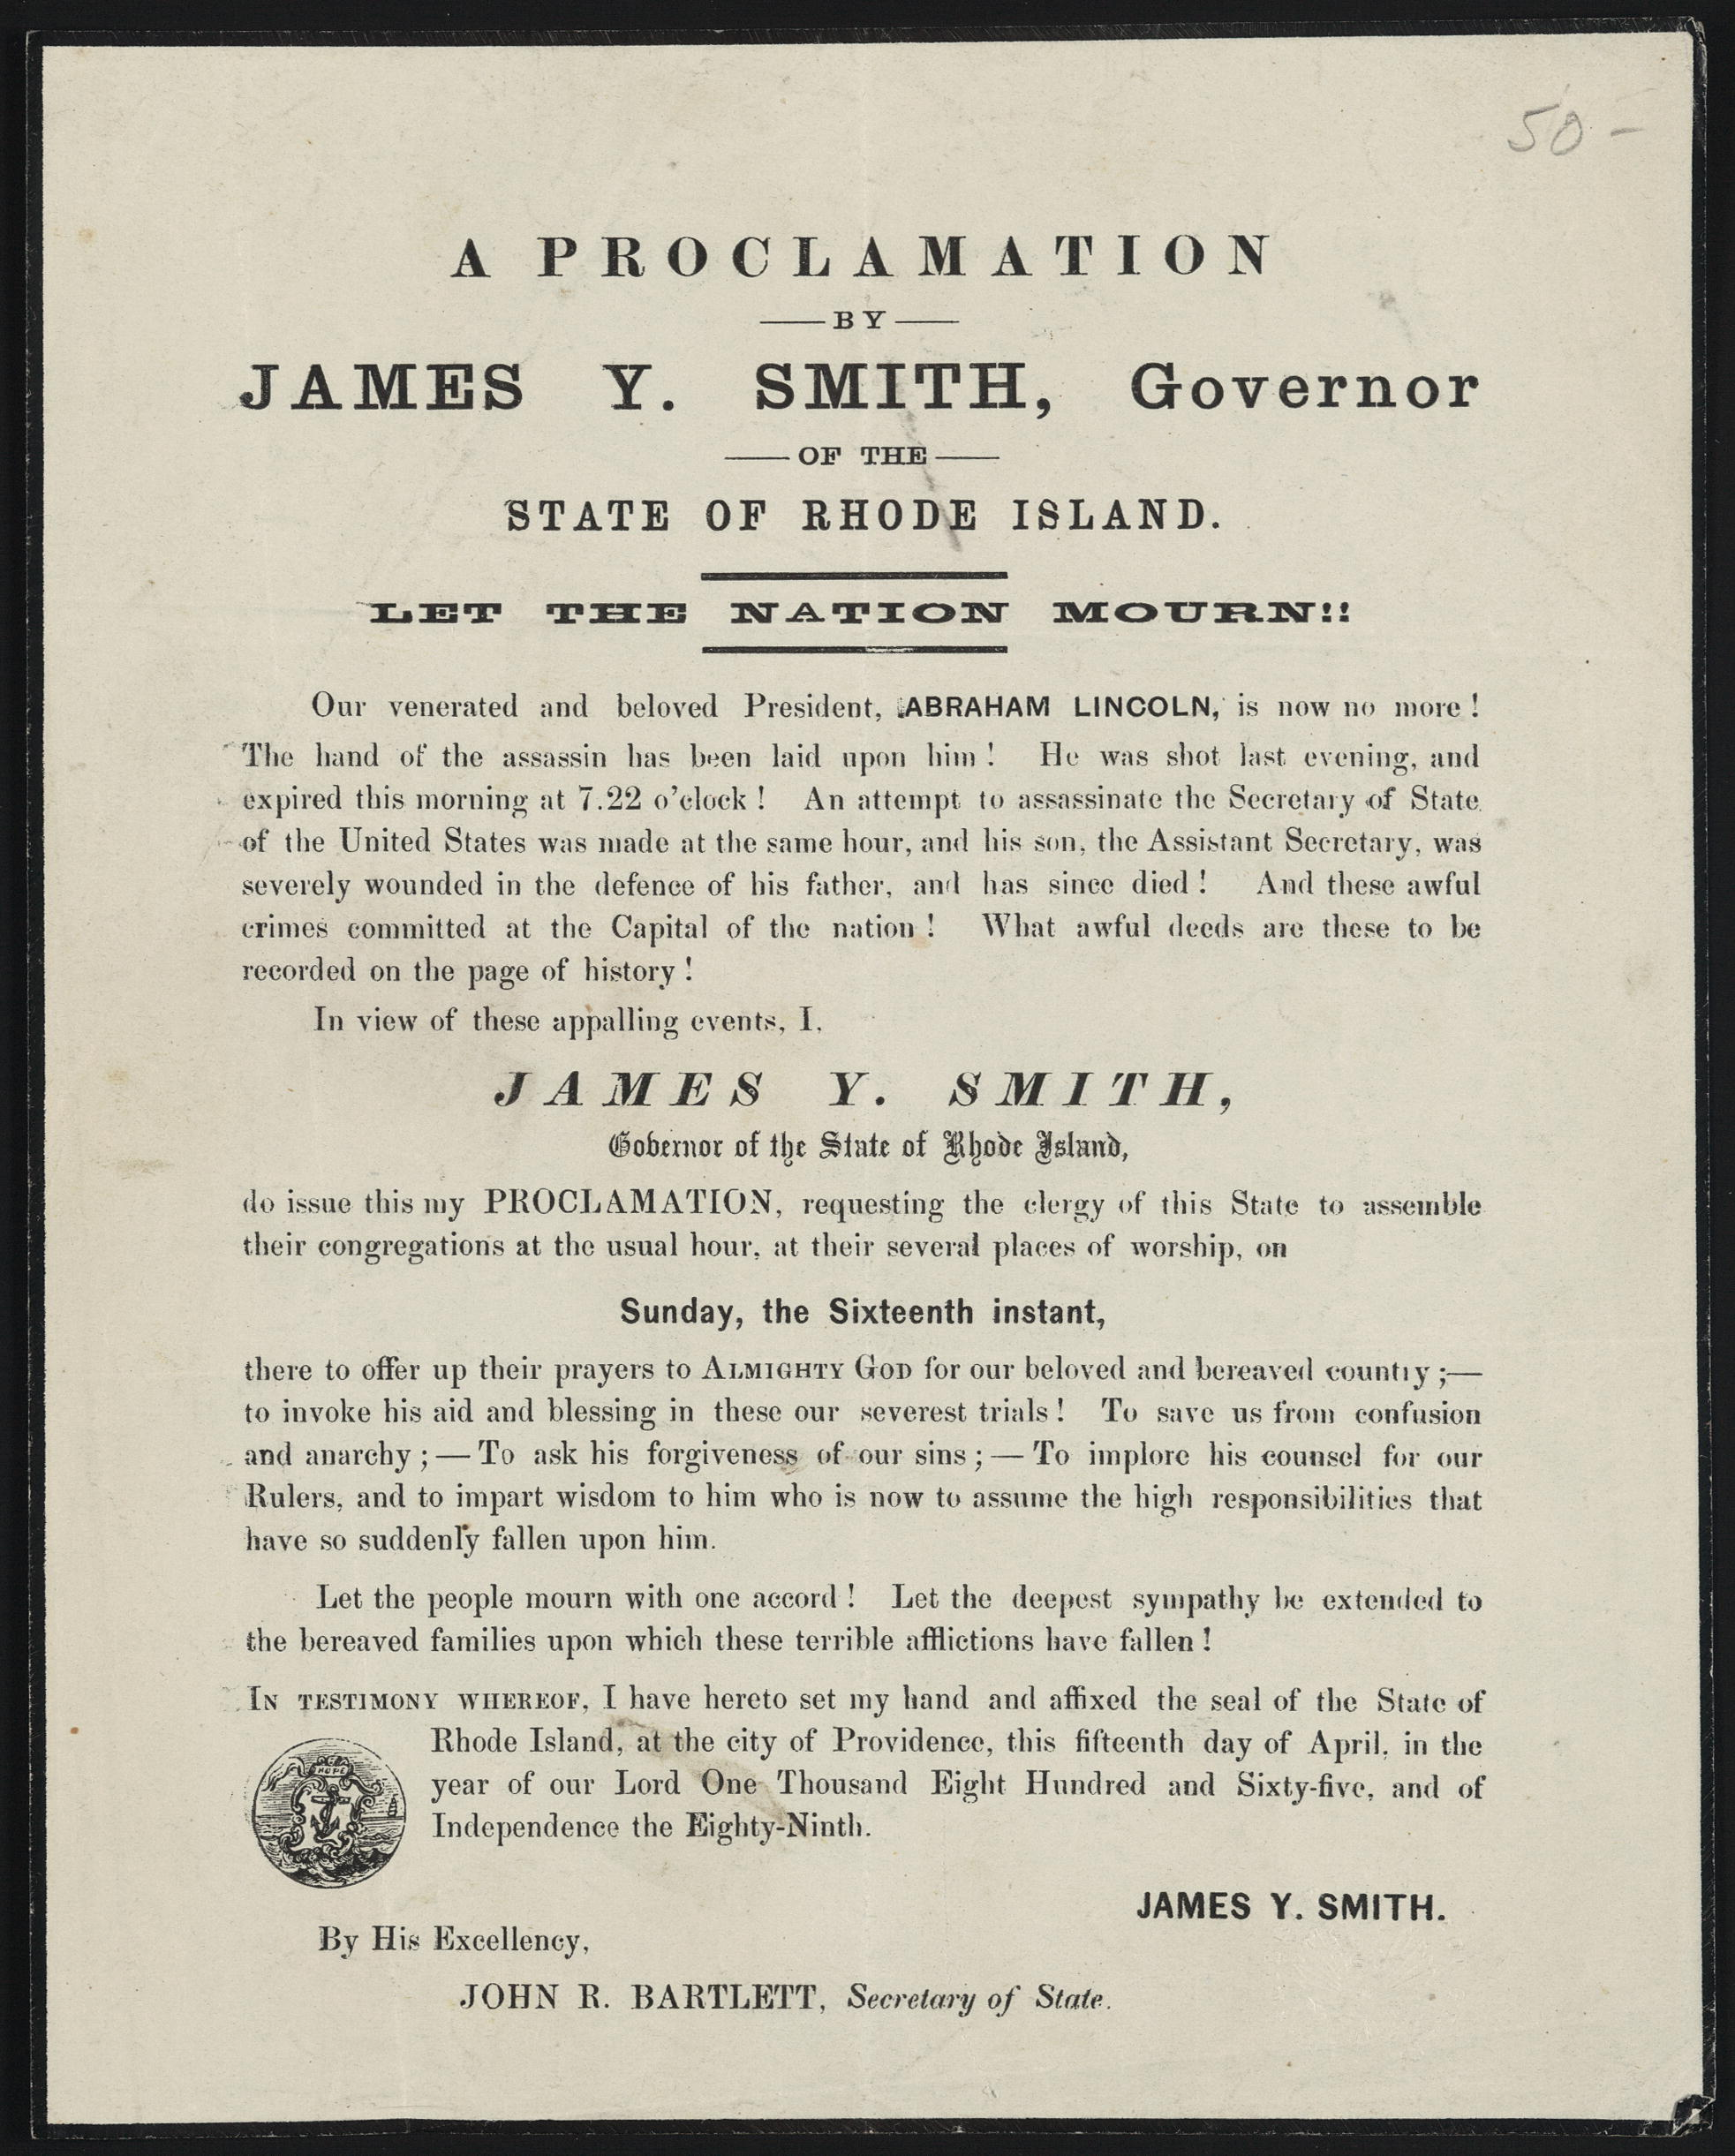 A Proclamation by James Youngs Smith, Governor of the State of Rhode Island